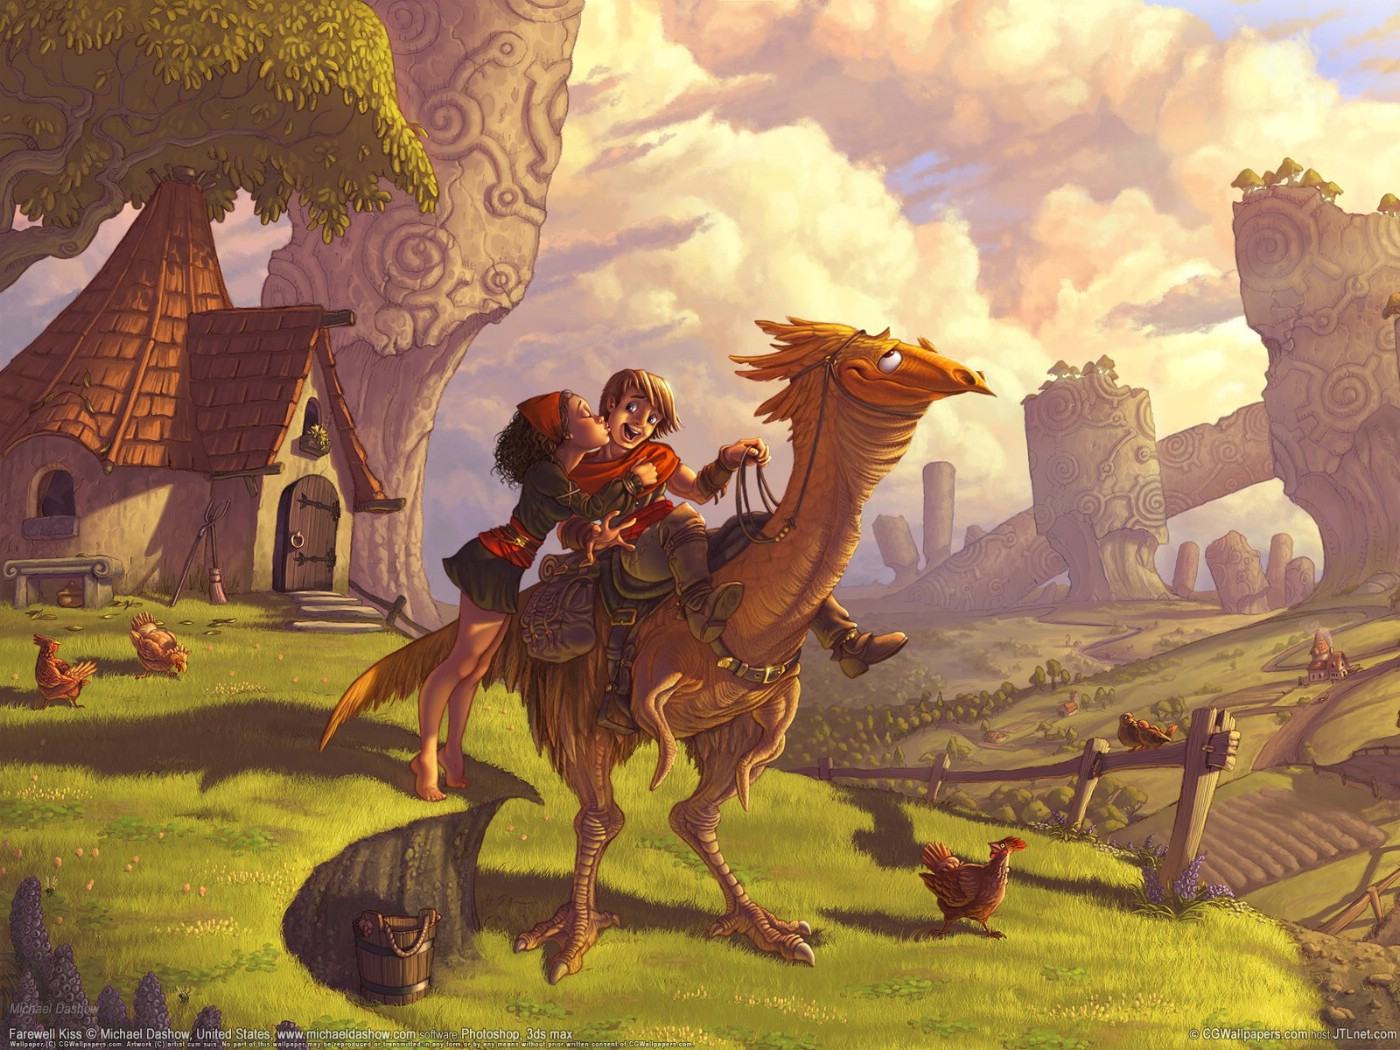 cartoon_fantasy_cg_artwork_1920x1200_382